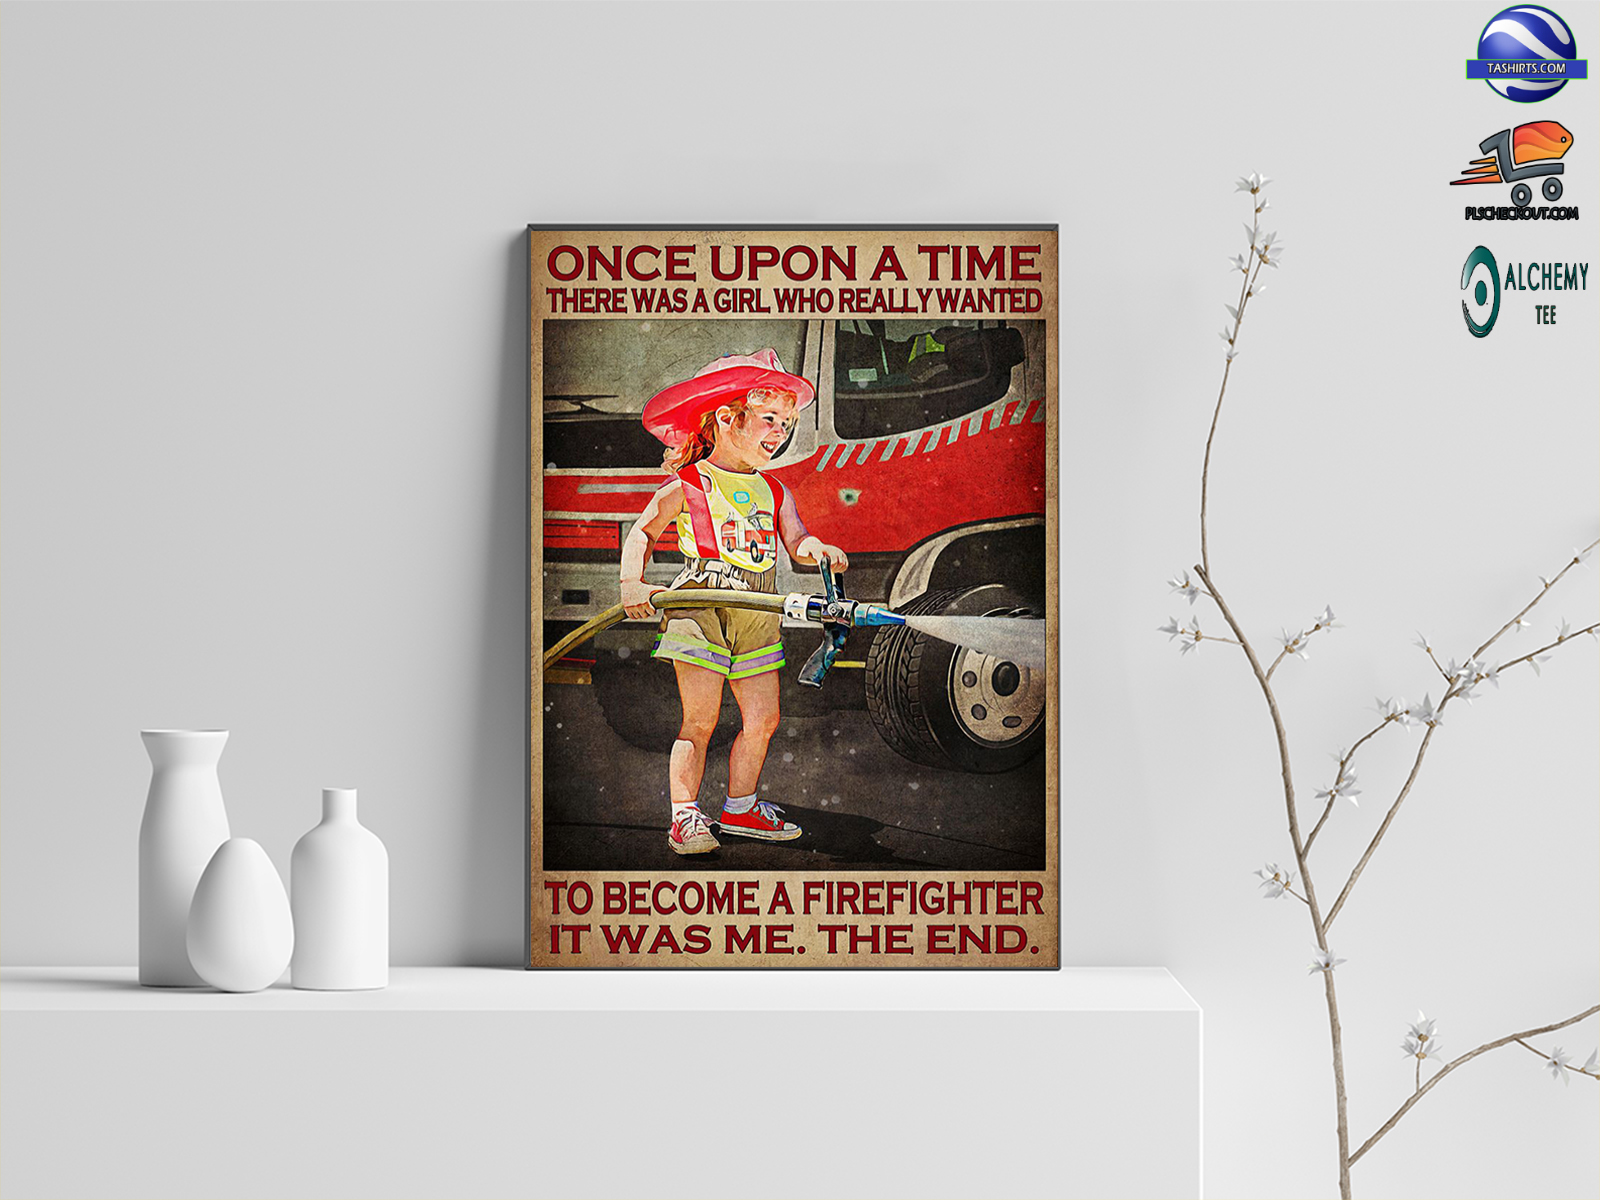 There was a girl who really wanted to become a firefighter it was me the end poster